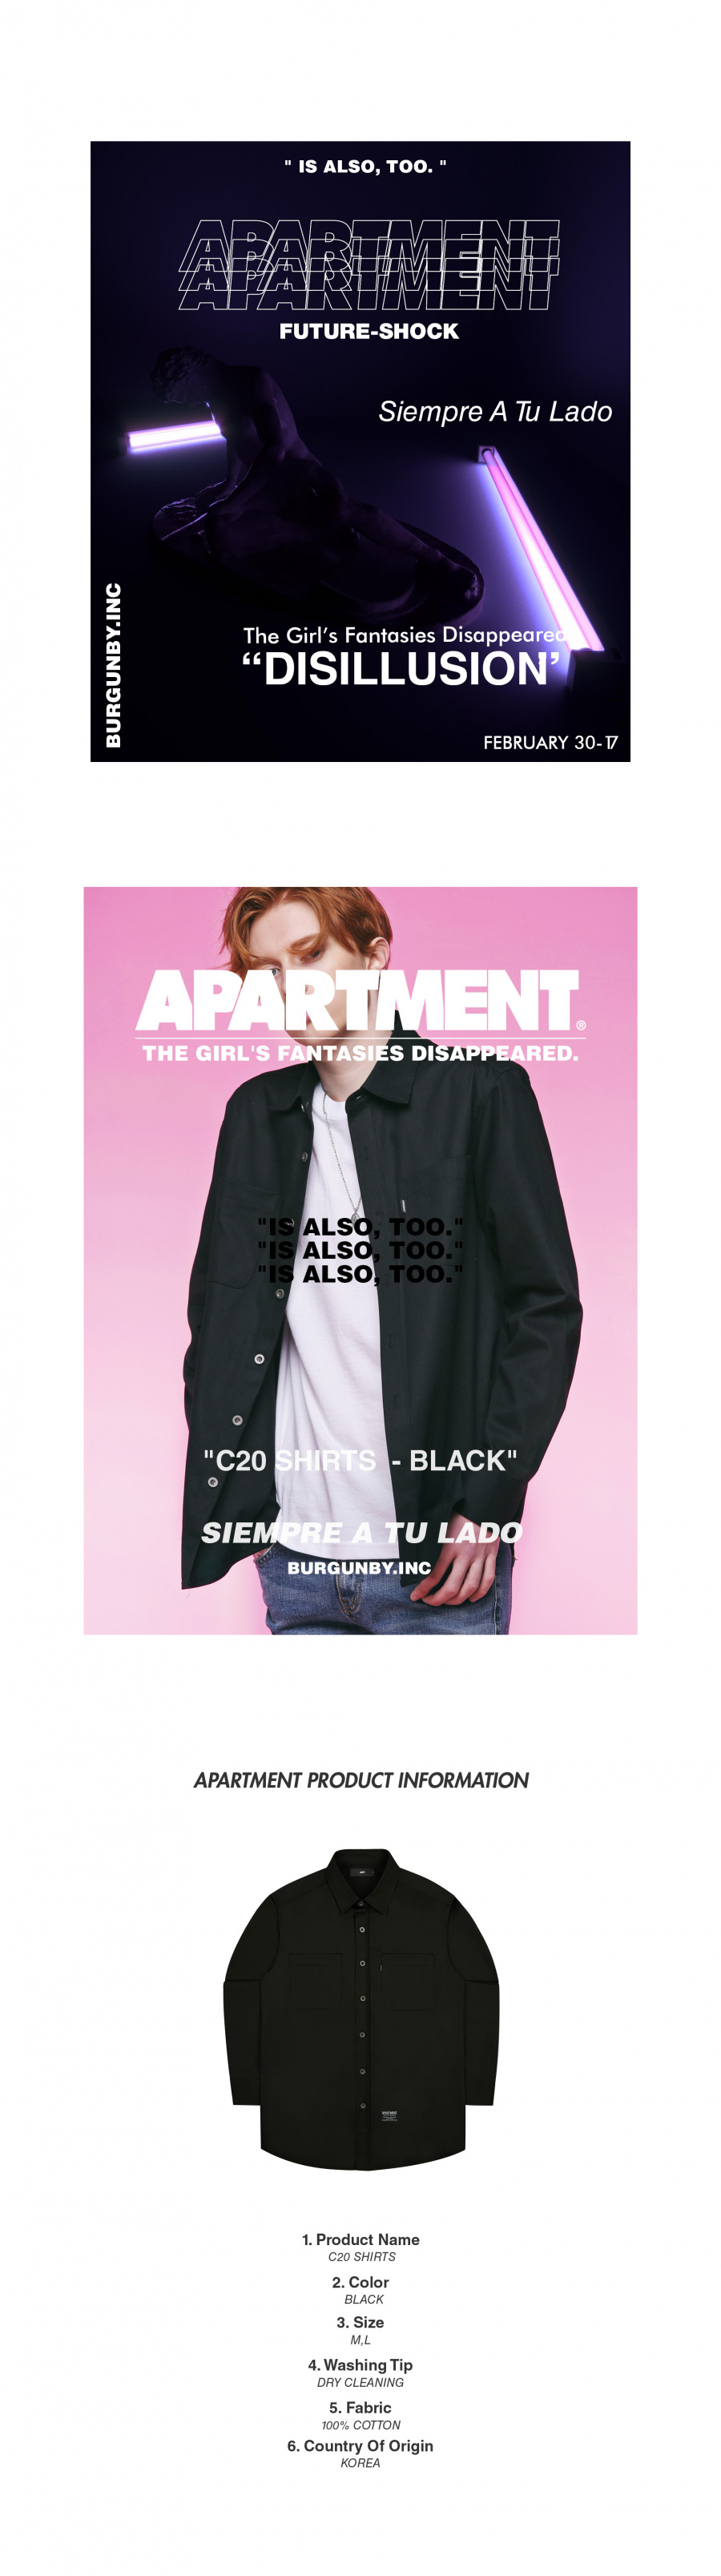 아파트먼트(APARTMENT) C20 - Black